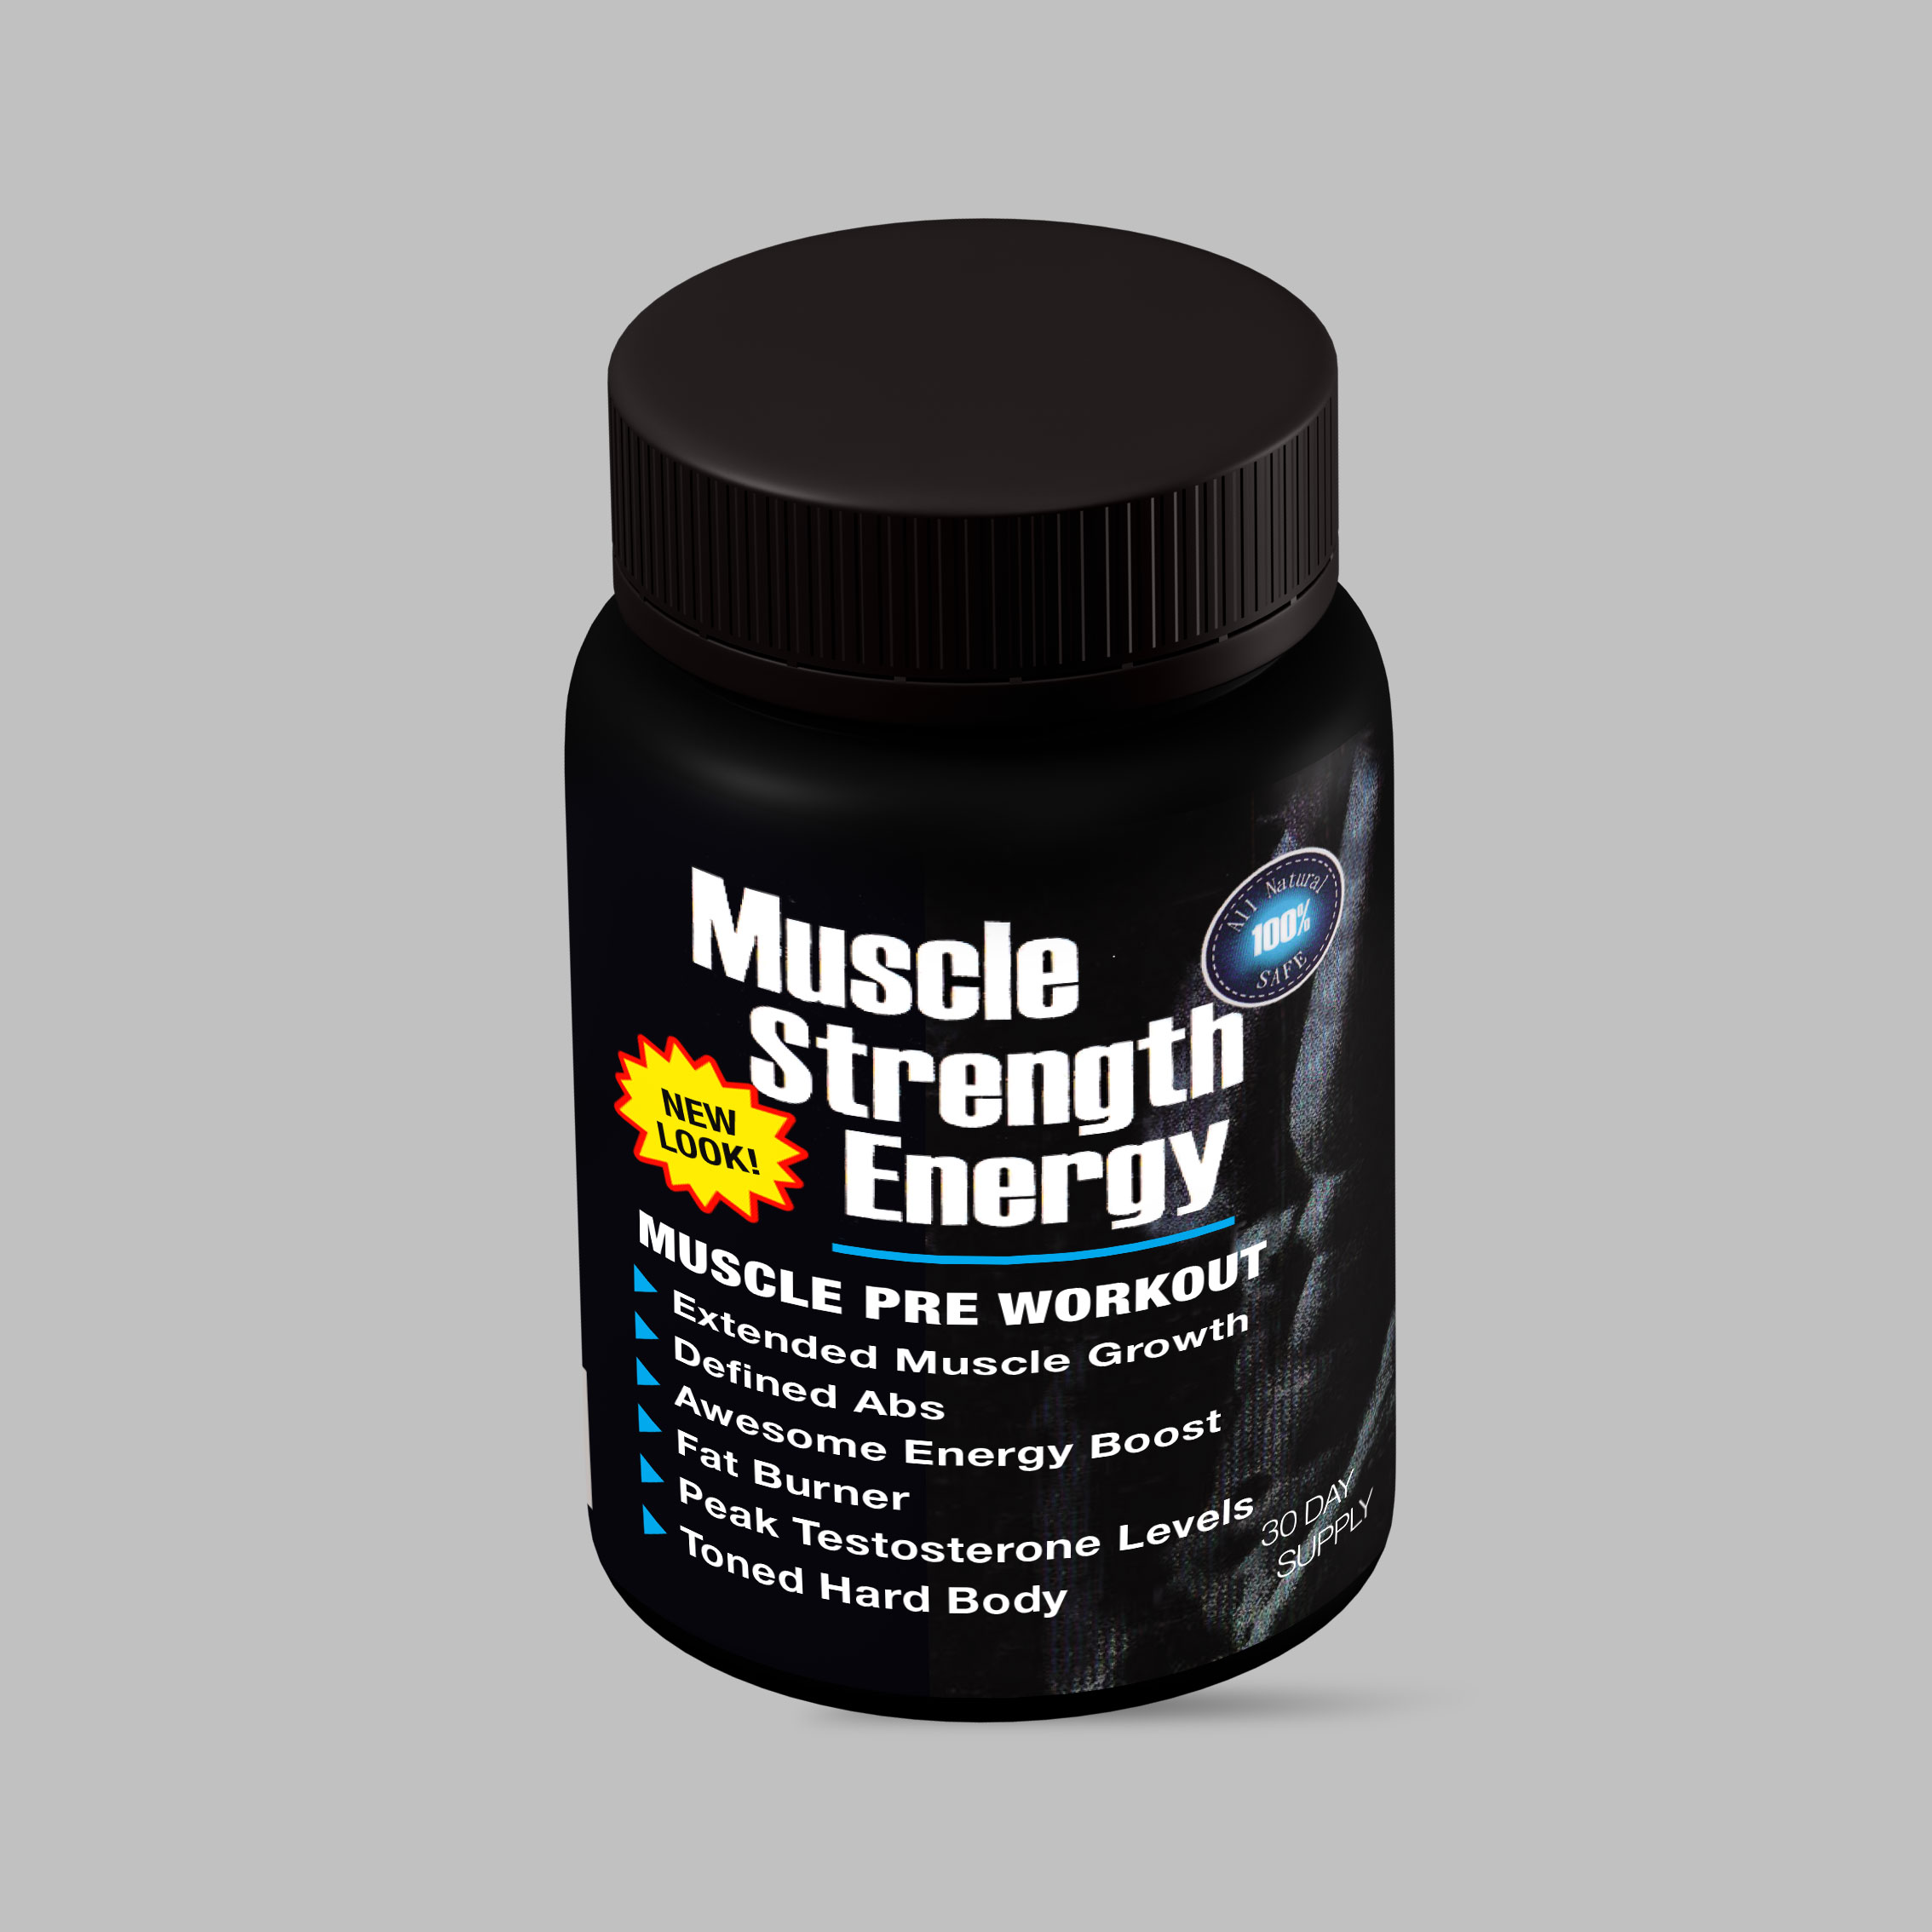 MUSCLE STRENGTH ENERGY